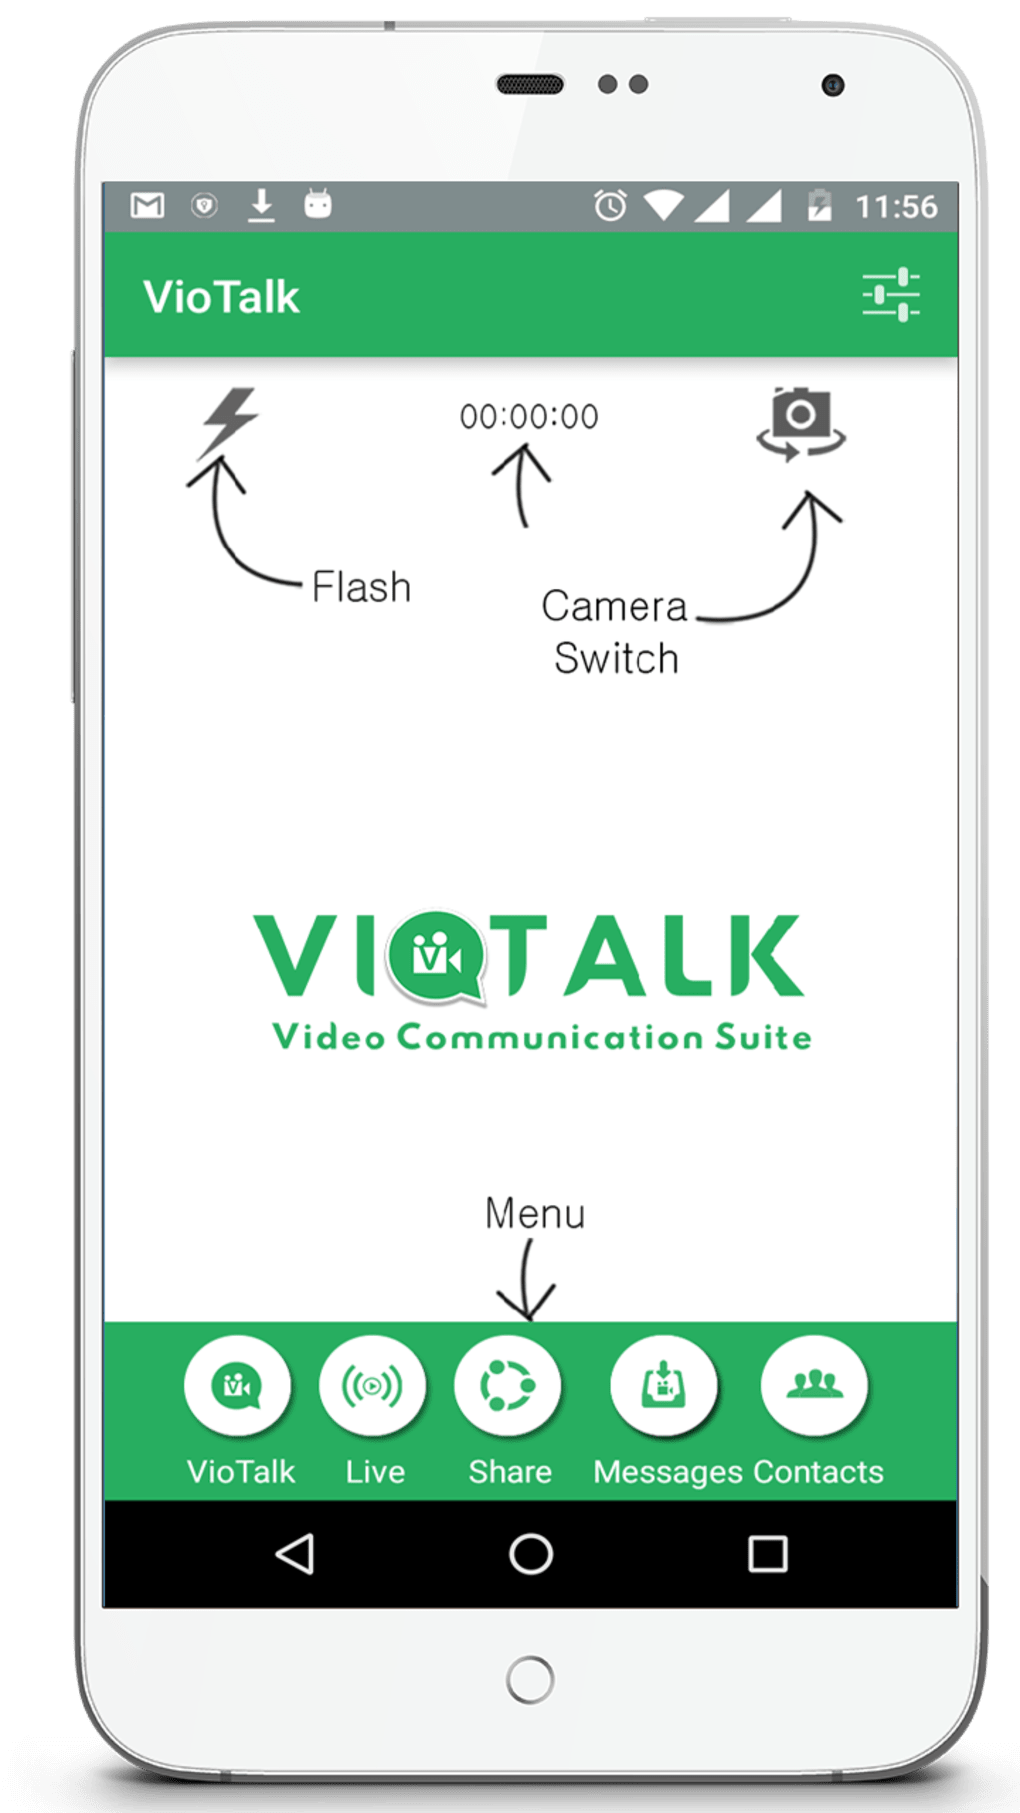 Viotalk for Android - Download